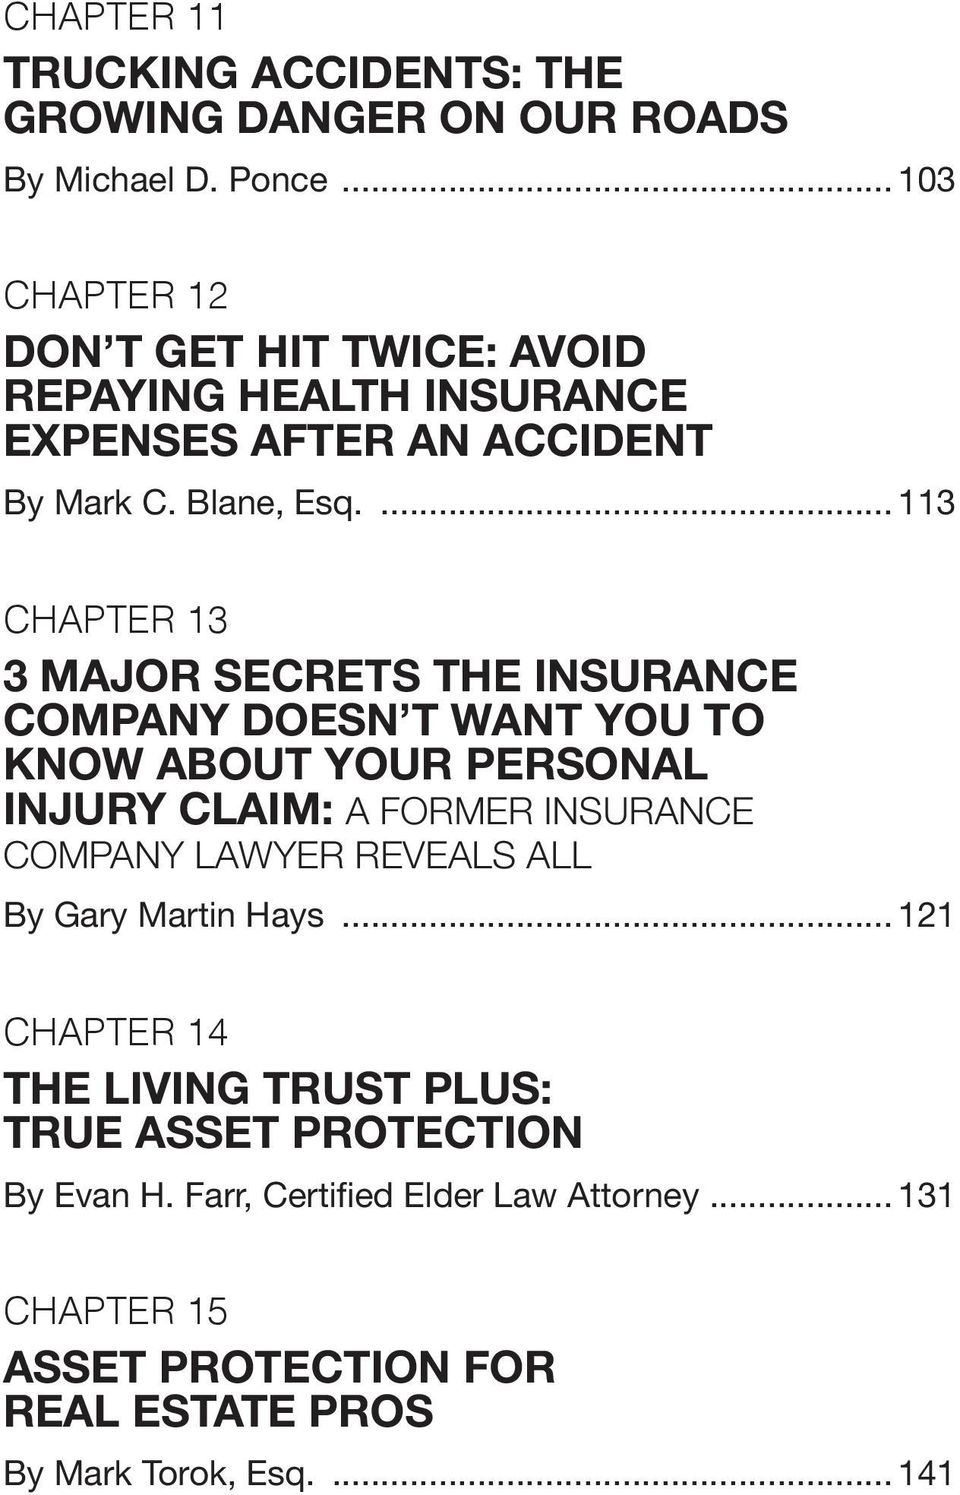 ... 113 Chapter 13 3 major SeCRetS the InSuRanCe ComPany doesn t Want you to know about your PeRSonal InjuRy ClaIm: A Former InsurAnce company